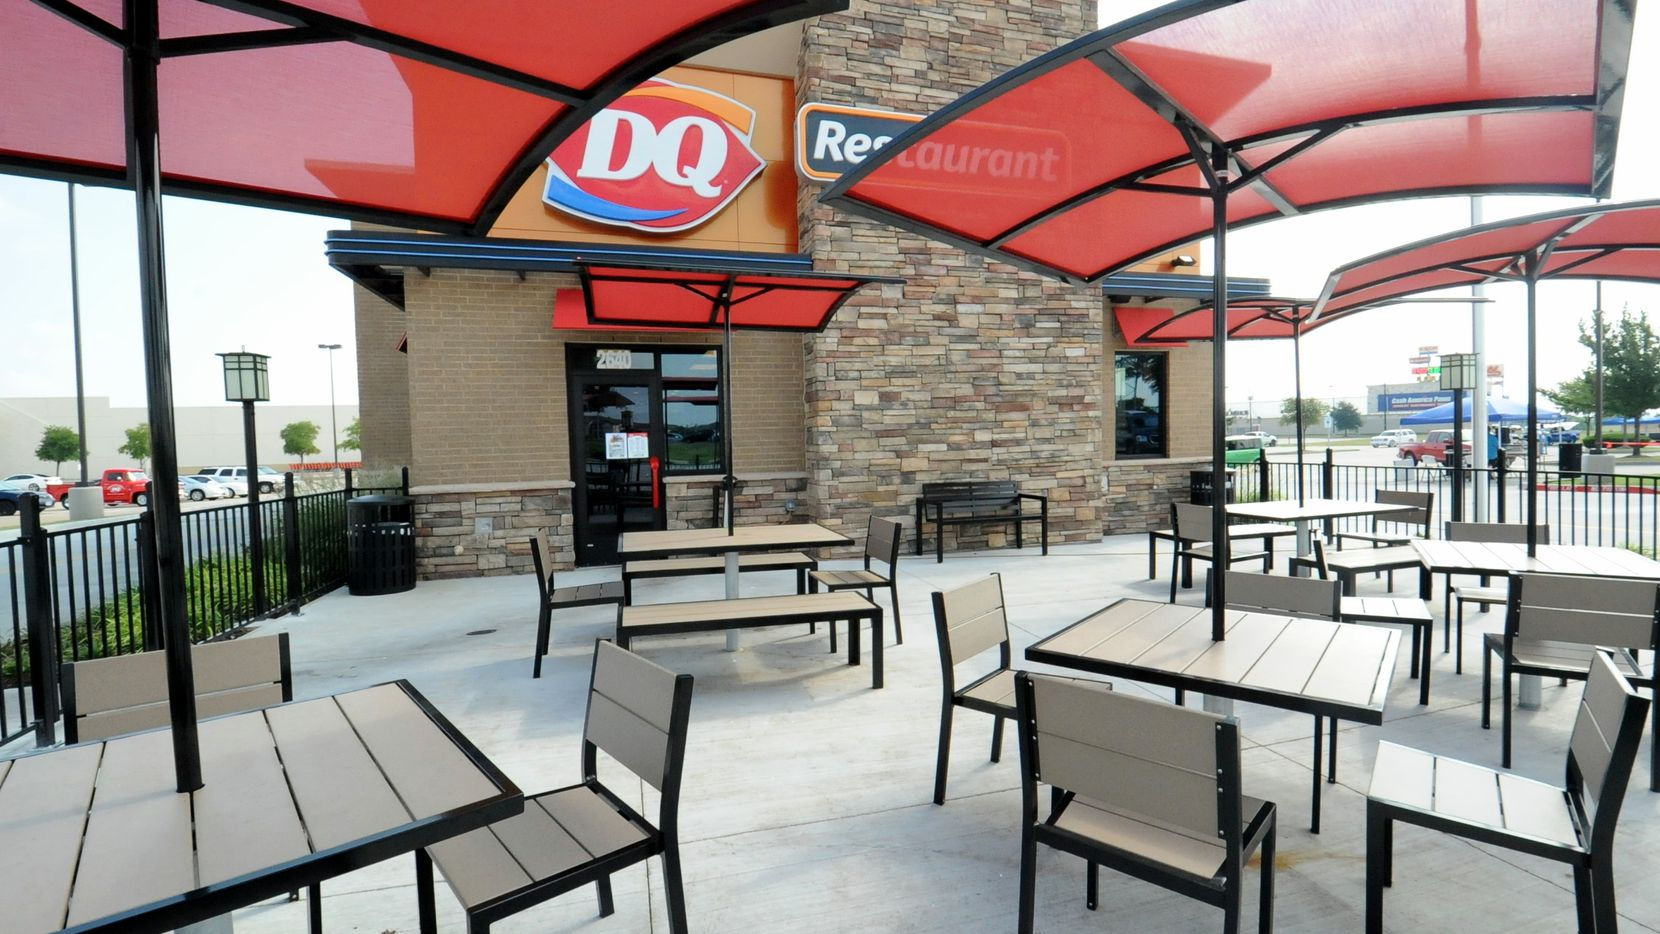 Dairy Queen franchisee Michael Clarke's nine fast-foot shops have closed, including this one in Grand Prairie, photographed in 2014.